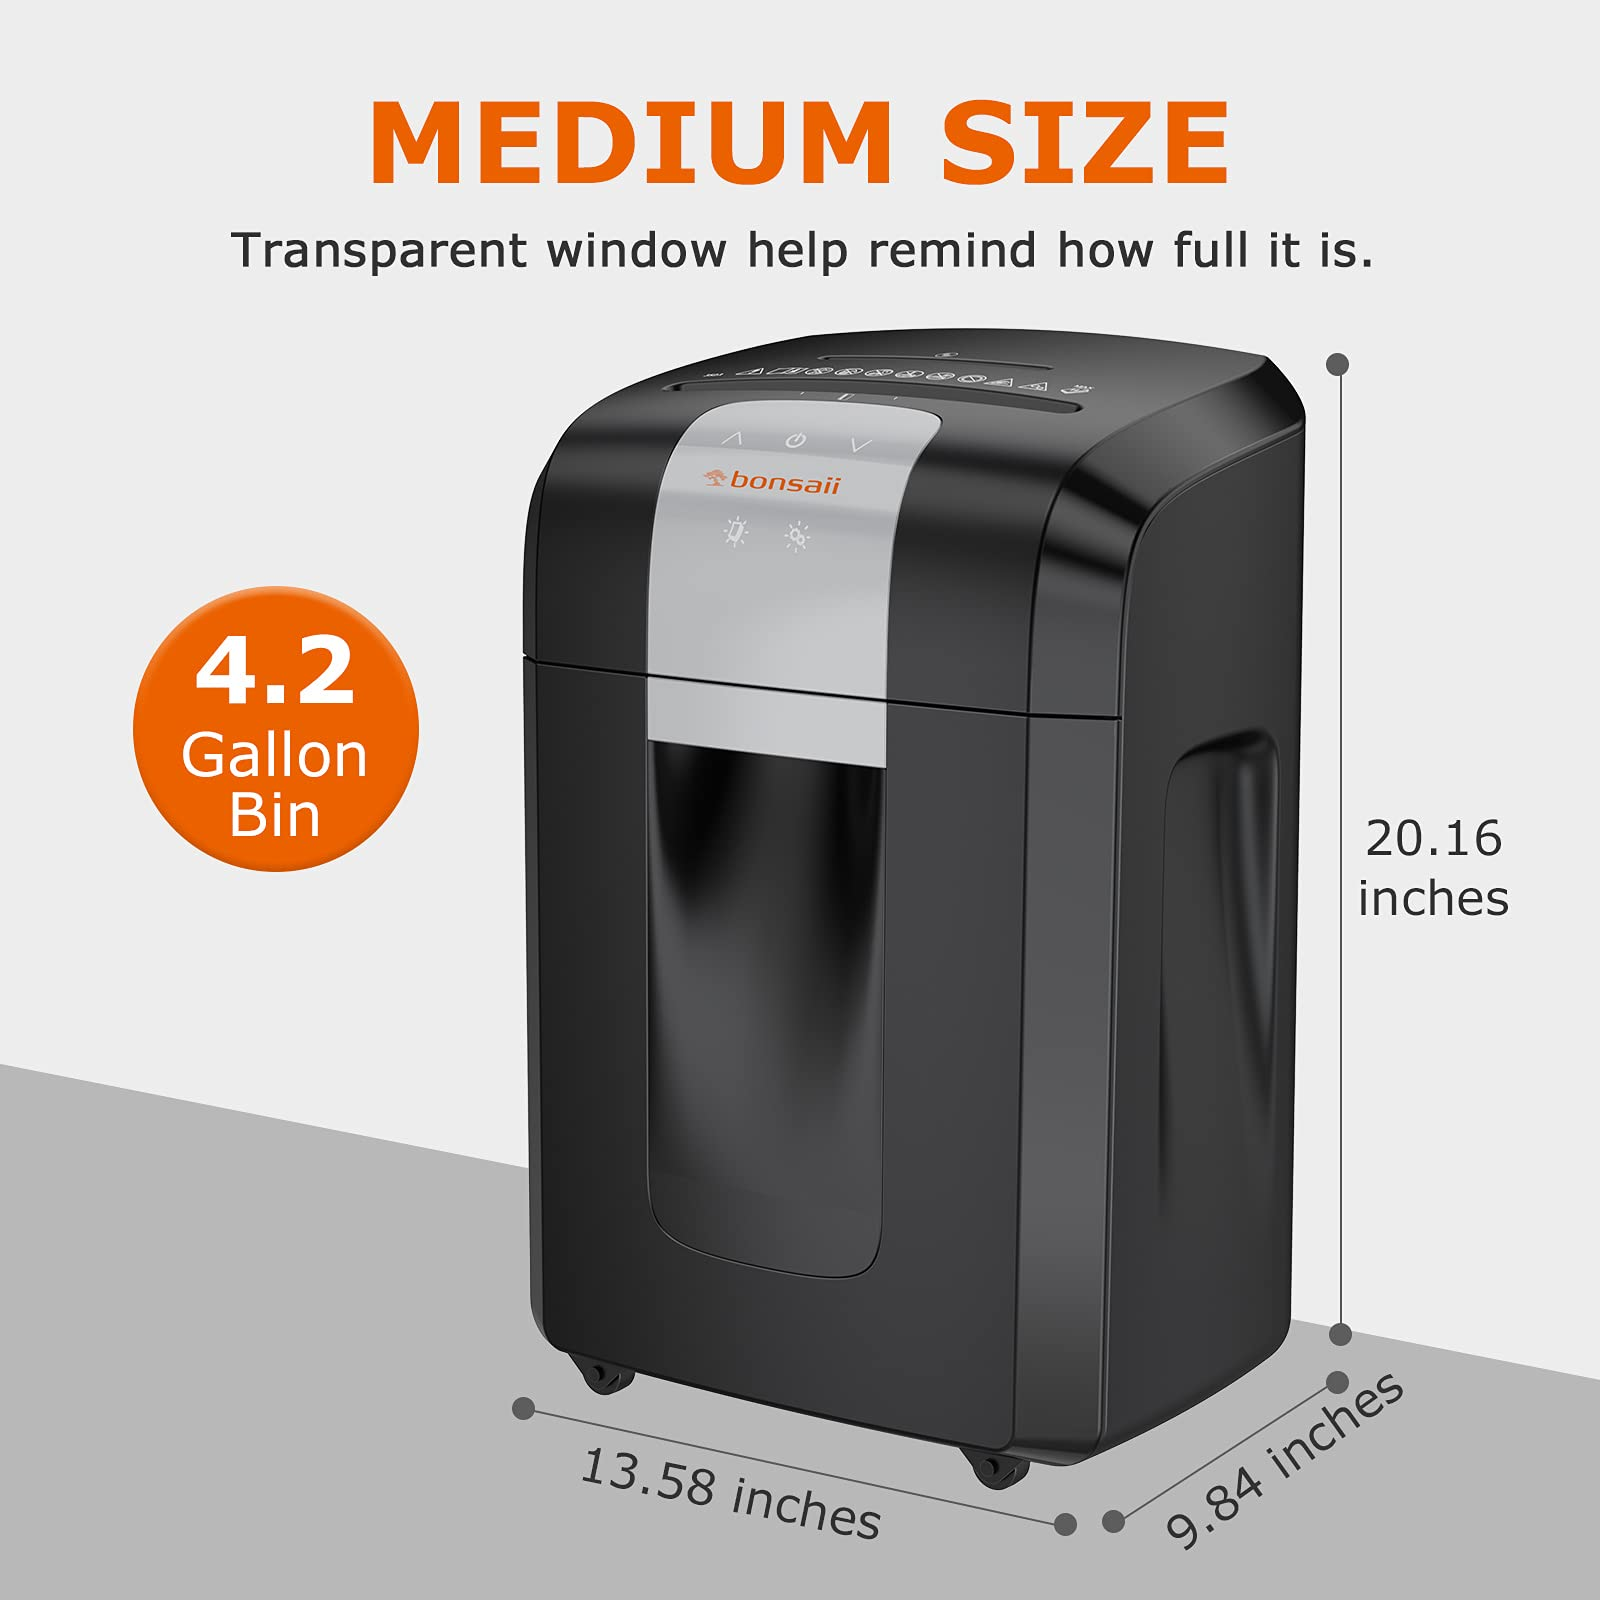 Paper Shredders for Home Office, bonsaii 60-Min Heavy Duty Shredder Ultra Quiet Cross-Cut Paper Shredder with Jam Proof System, Shreds CDs/Credit Cards, 4.2-Gallon Wasterbasket(3S16 Evershred Pro)